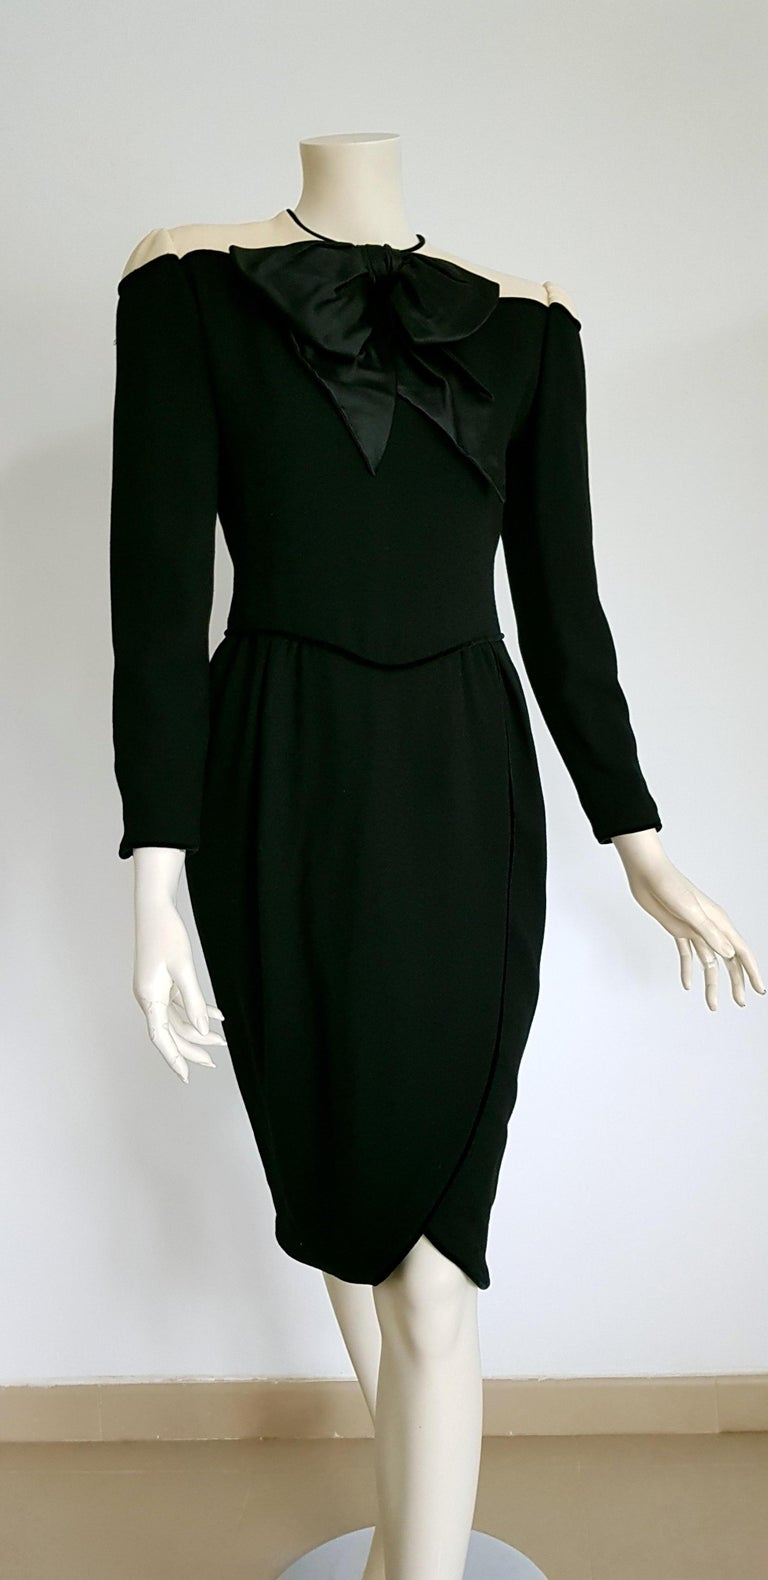 VALENTINO black wool and silk crêpe, white shoulders, bow in front, velvet hems dress - Unworn. .. SIZE: equivalent to about Small / Medium, please review approx measurements as follows in cm: lenght 105, chest underarm to underarm 46, bust